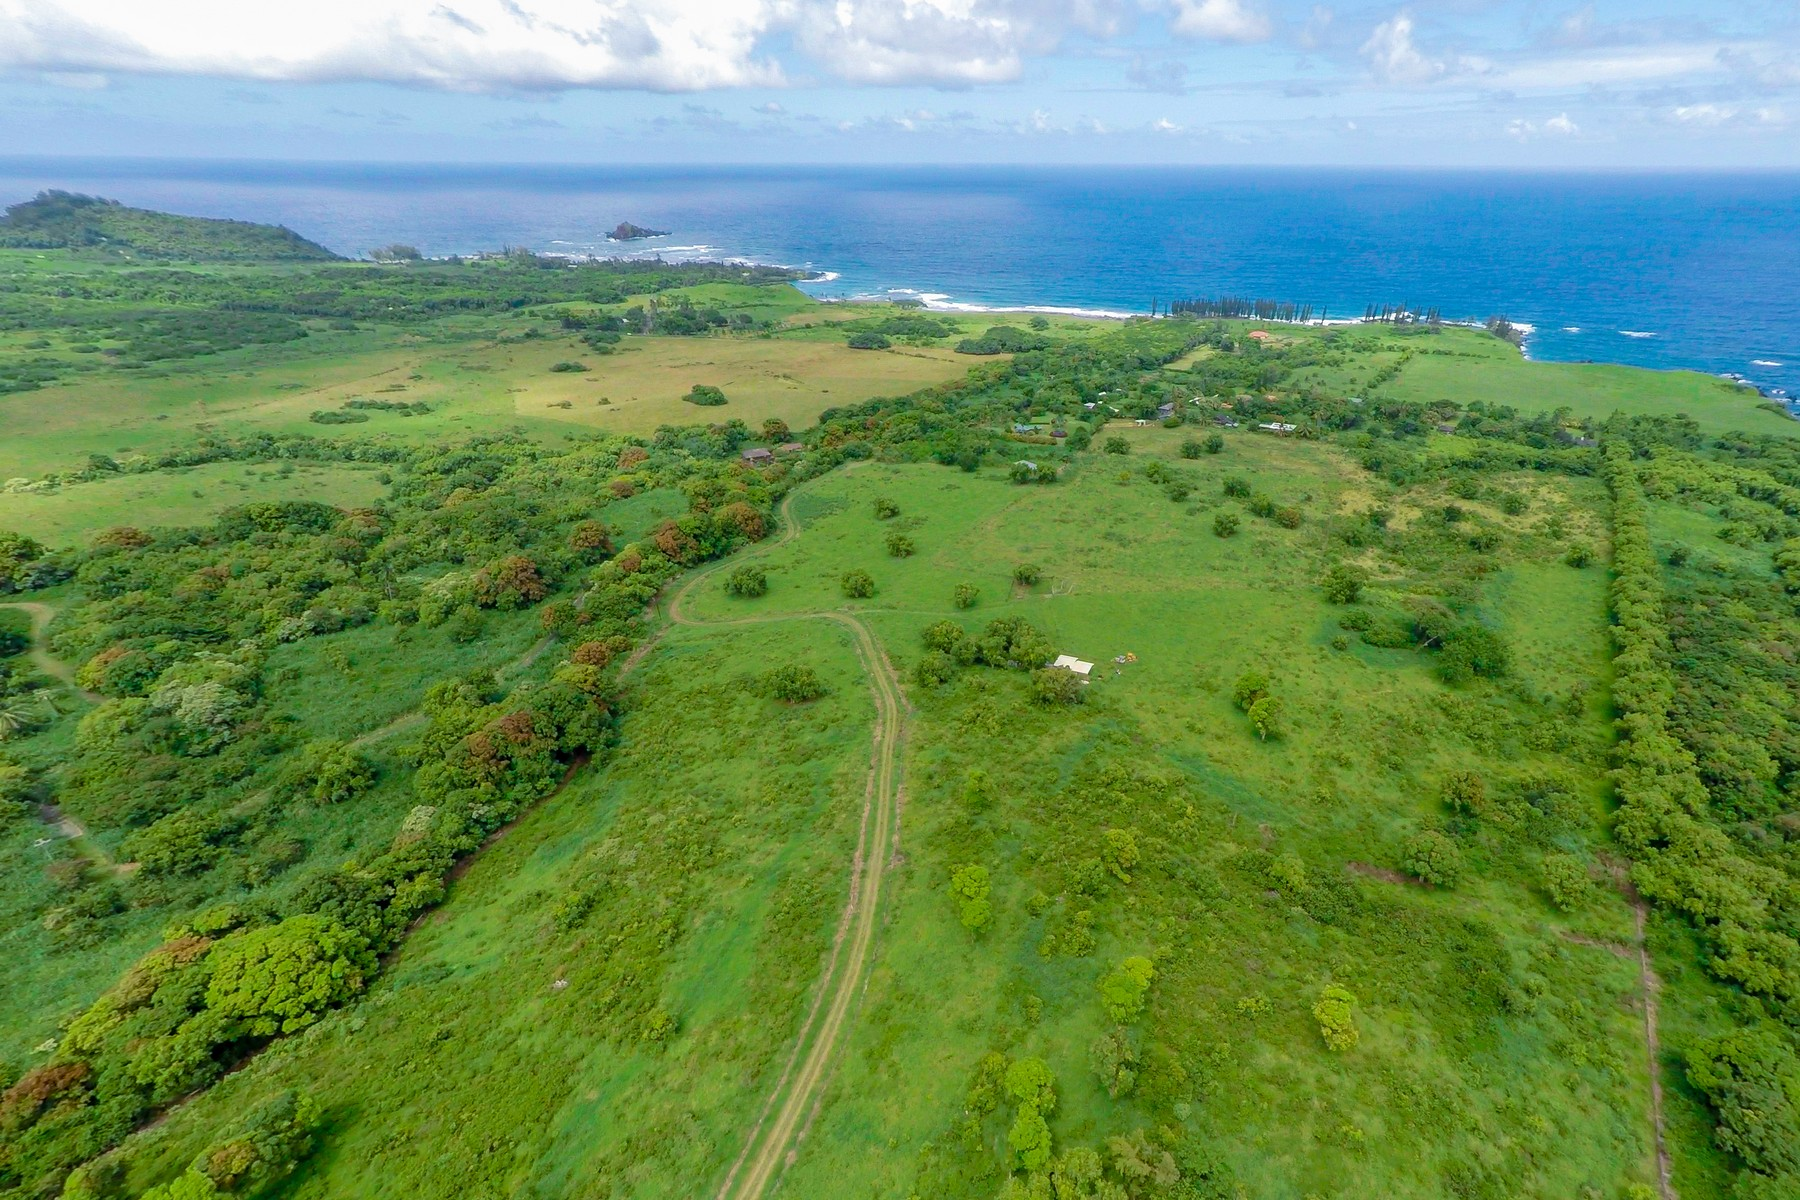 Land for Sale at Over 16 Acres in Beautiful Maka'alae - Hana, Maui 213 Kapia Road, Lot #3-Parcel #68 Hana, Hawaii, 96713 United States